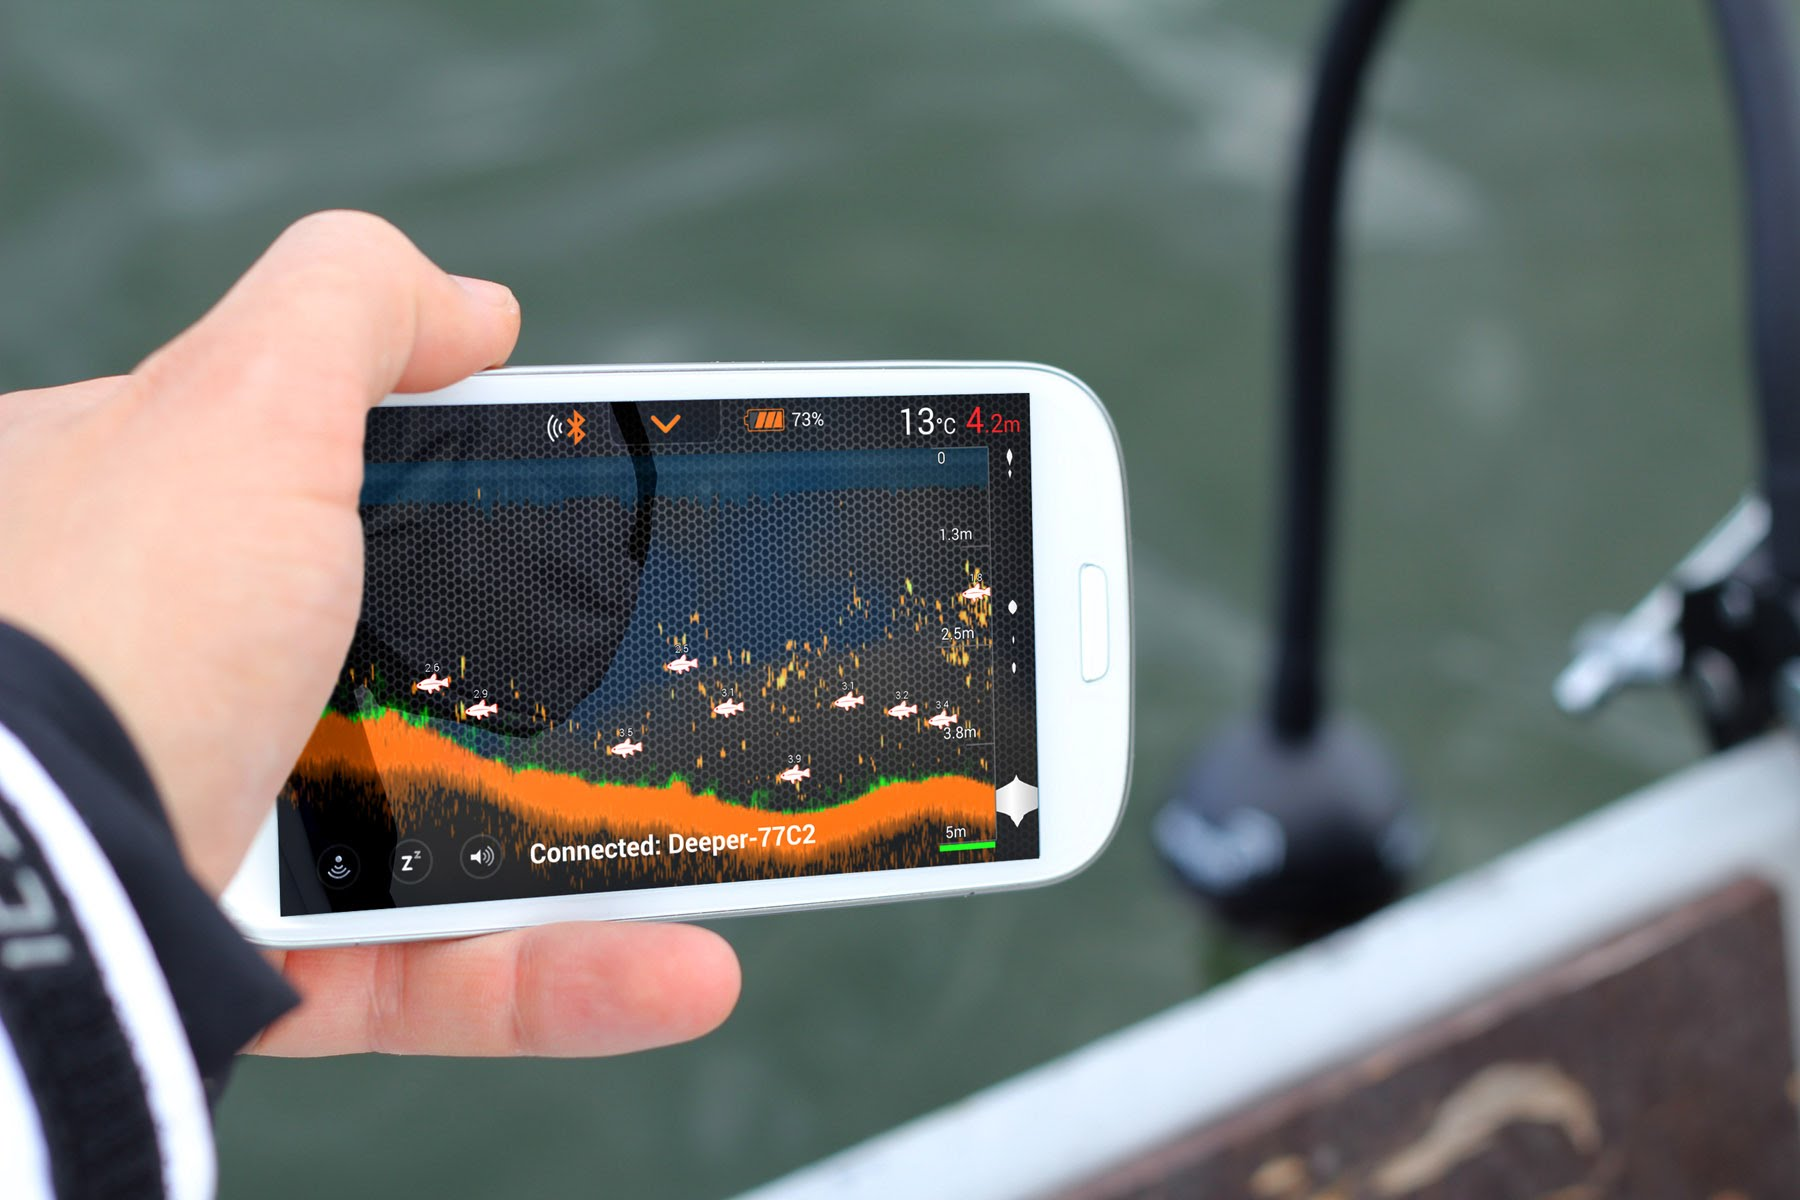 Catch fish using Fish Finder